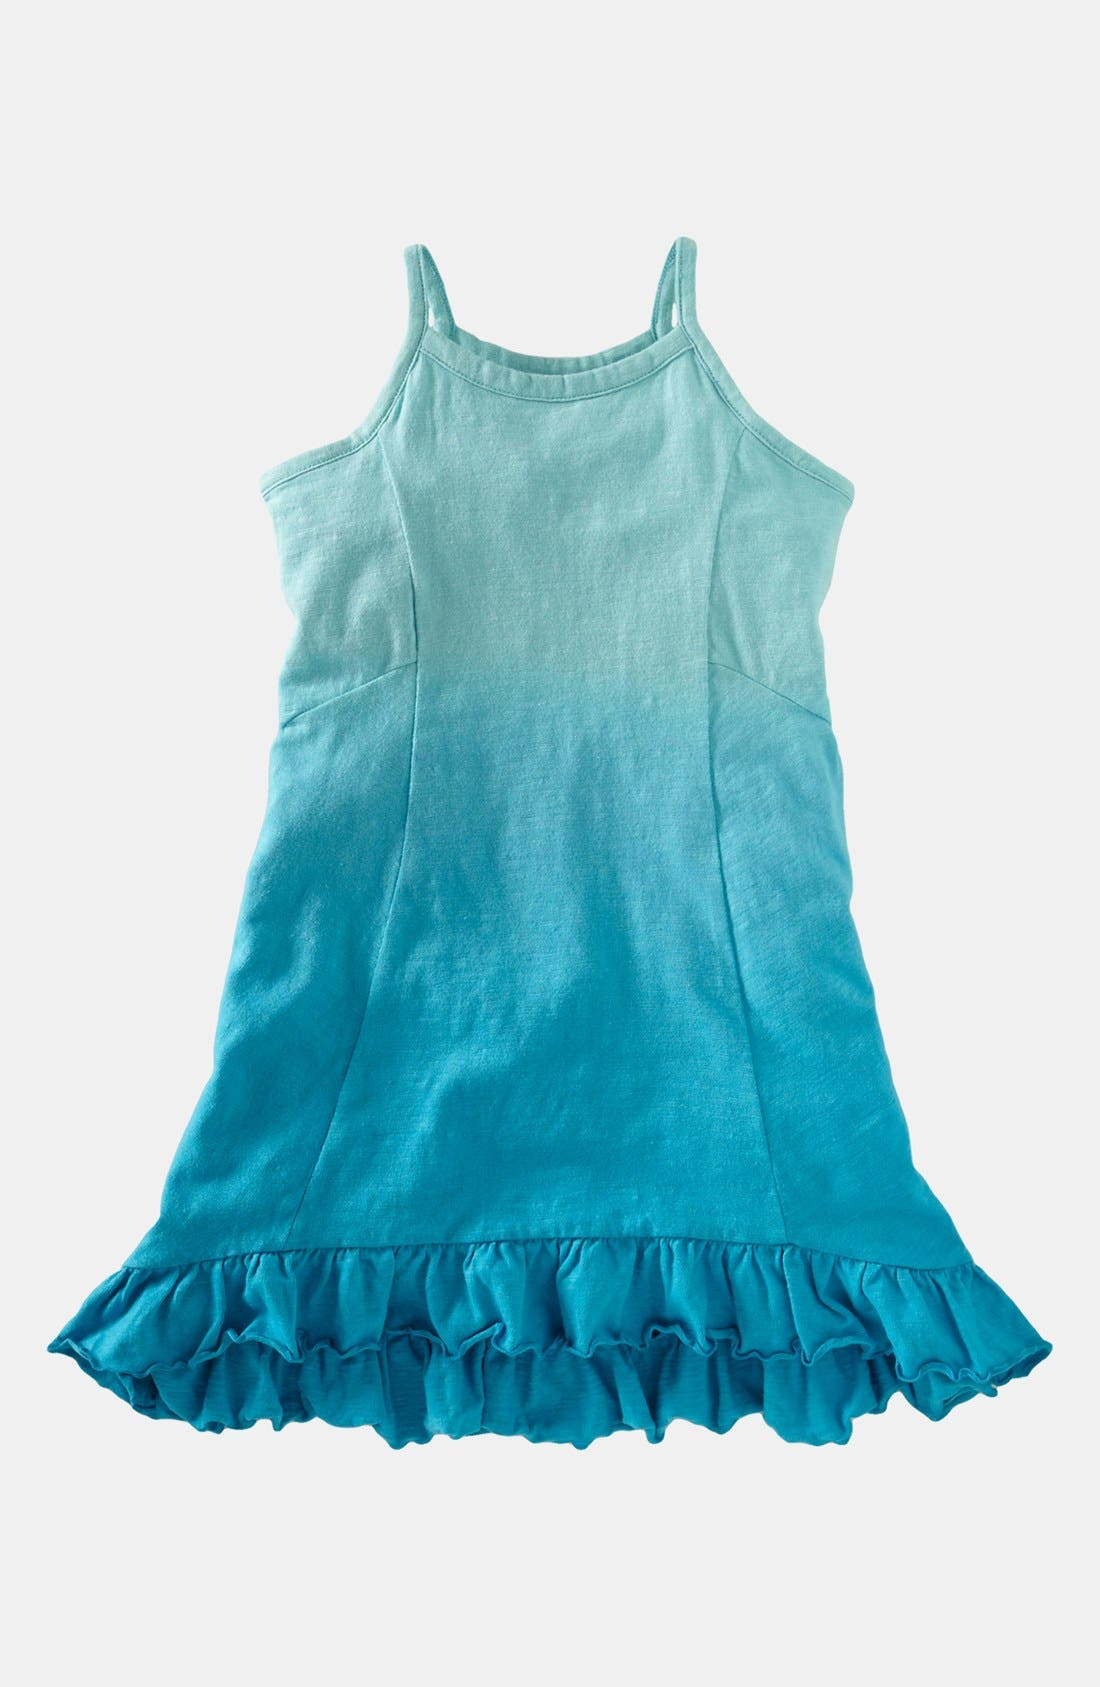 Alternate Image 1 Selected - Tea Collection 'Seafarer' Dress (Toddler)